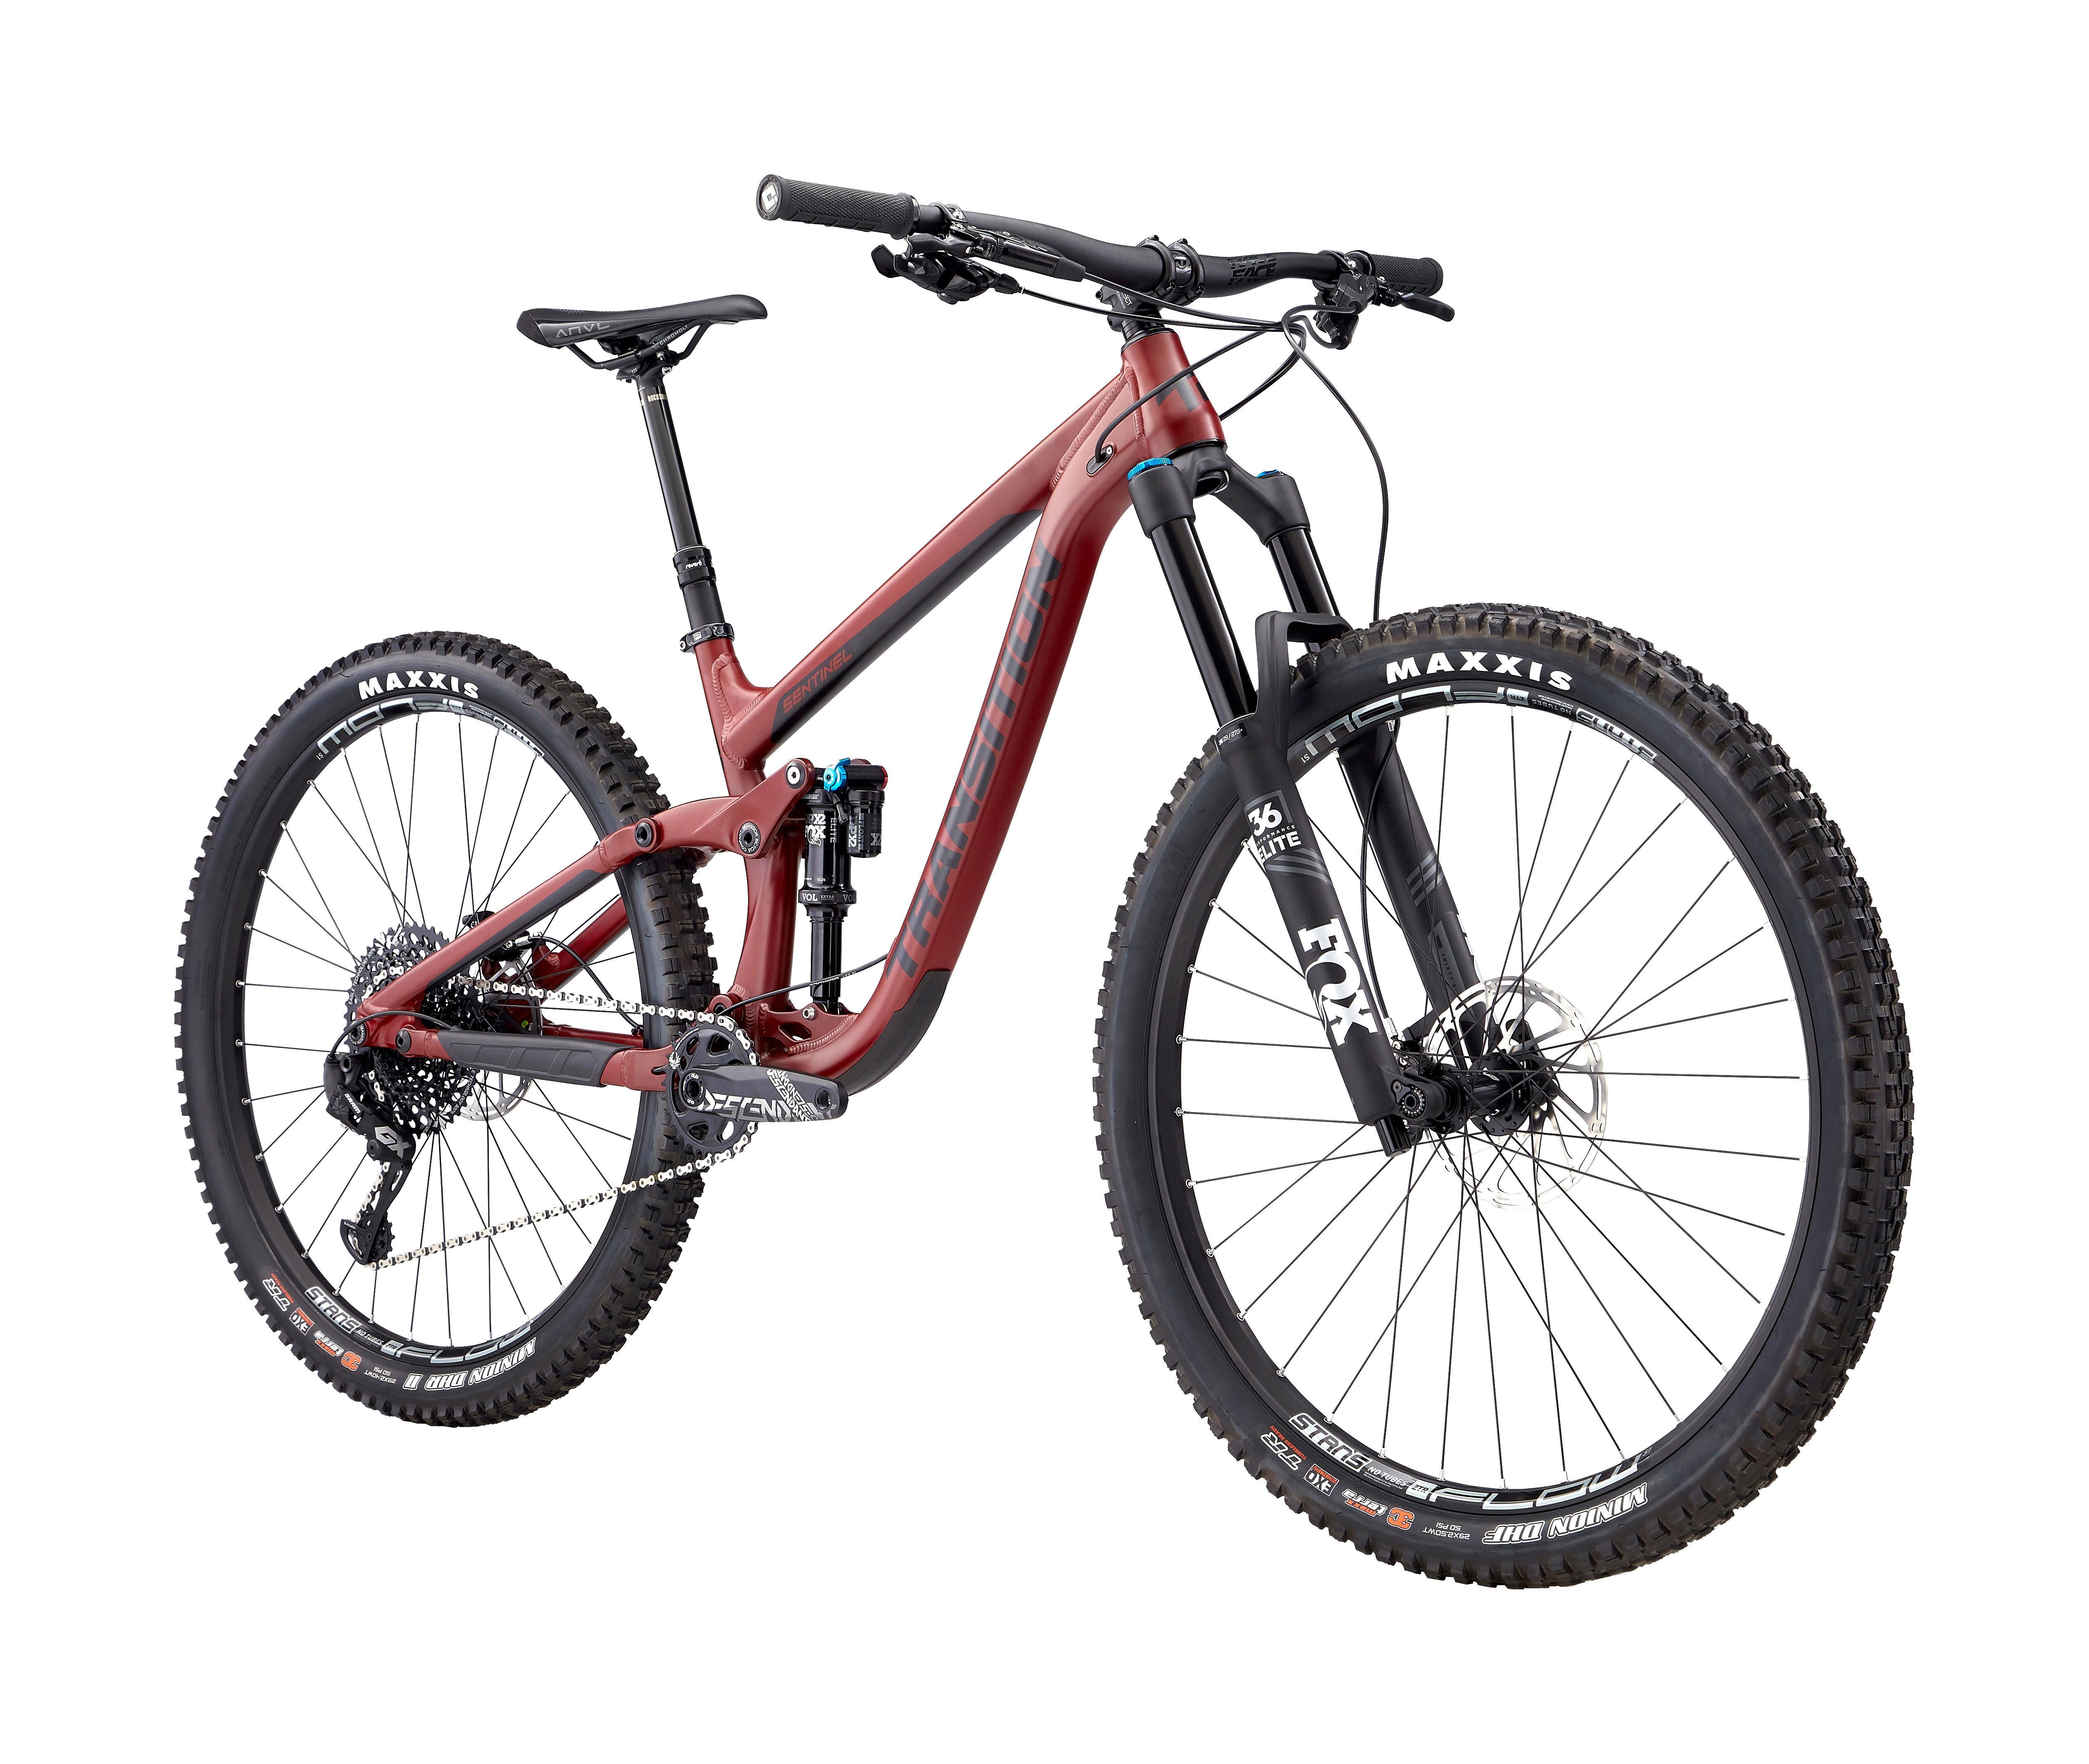 2019 Transition Sentinel Alloy GX Full Suspension Mountain Bike in Red | MTB